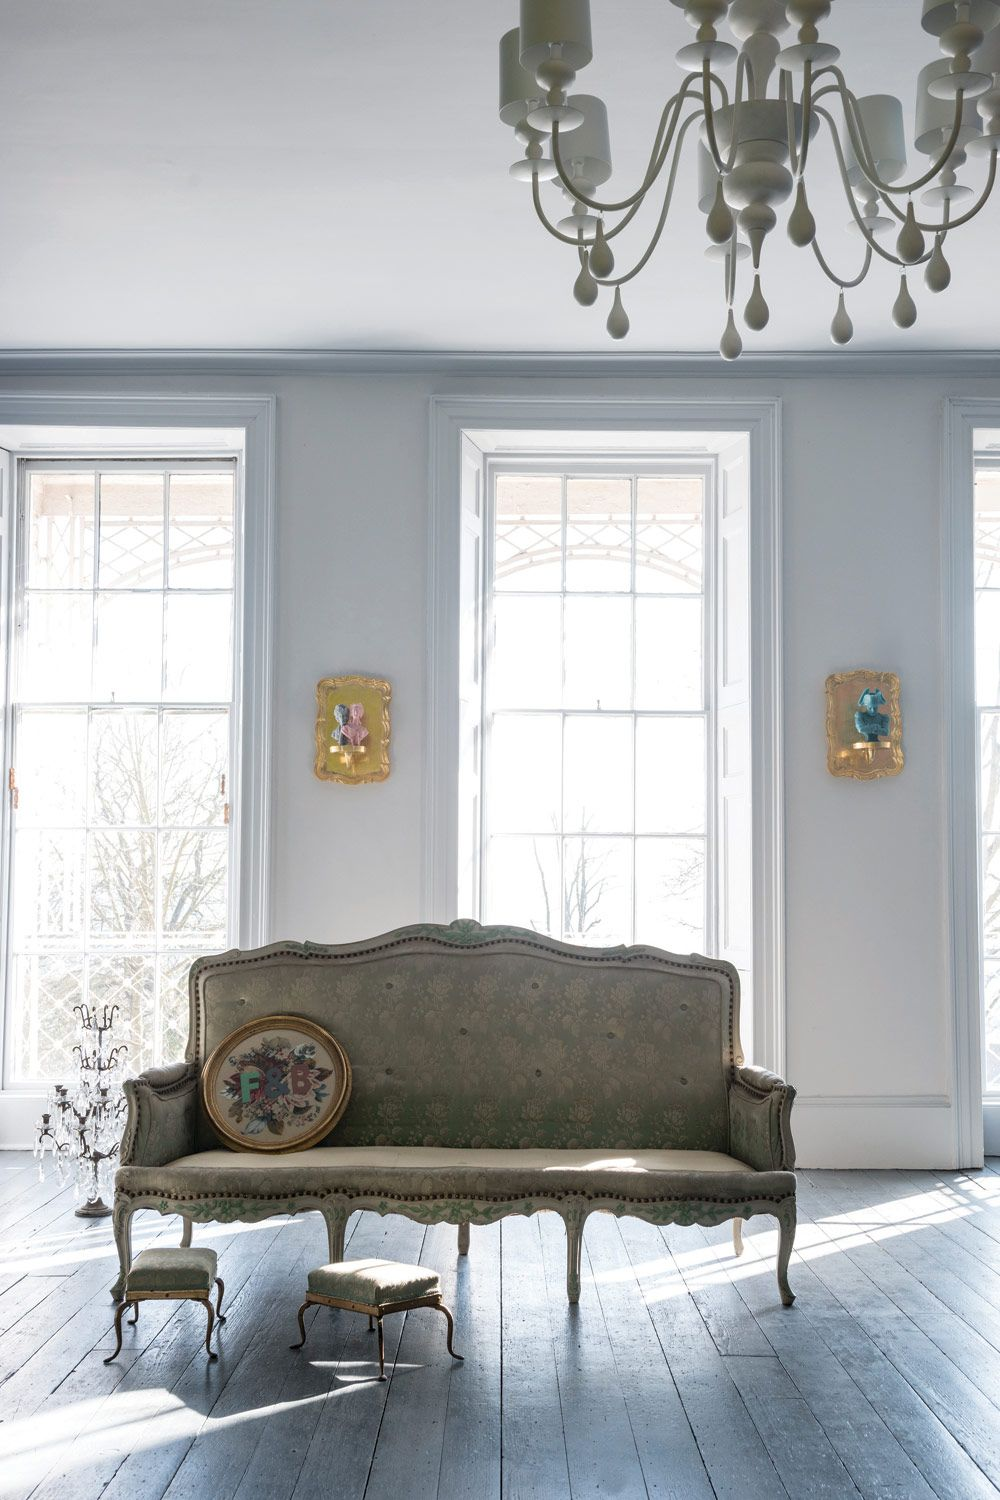 2014 Architectural Digest Home Design Show exhibitor Farrow & Ball ...